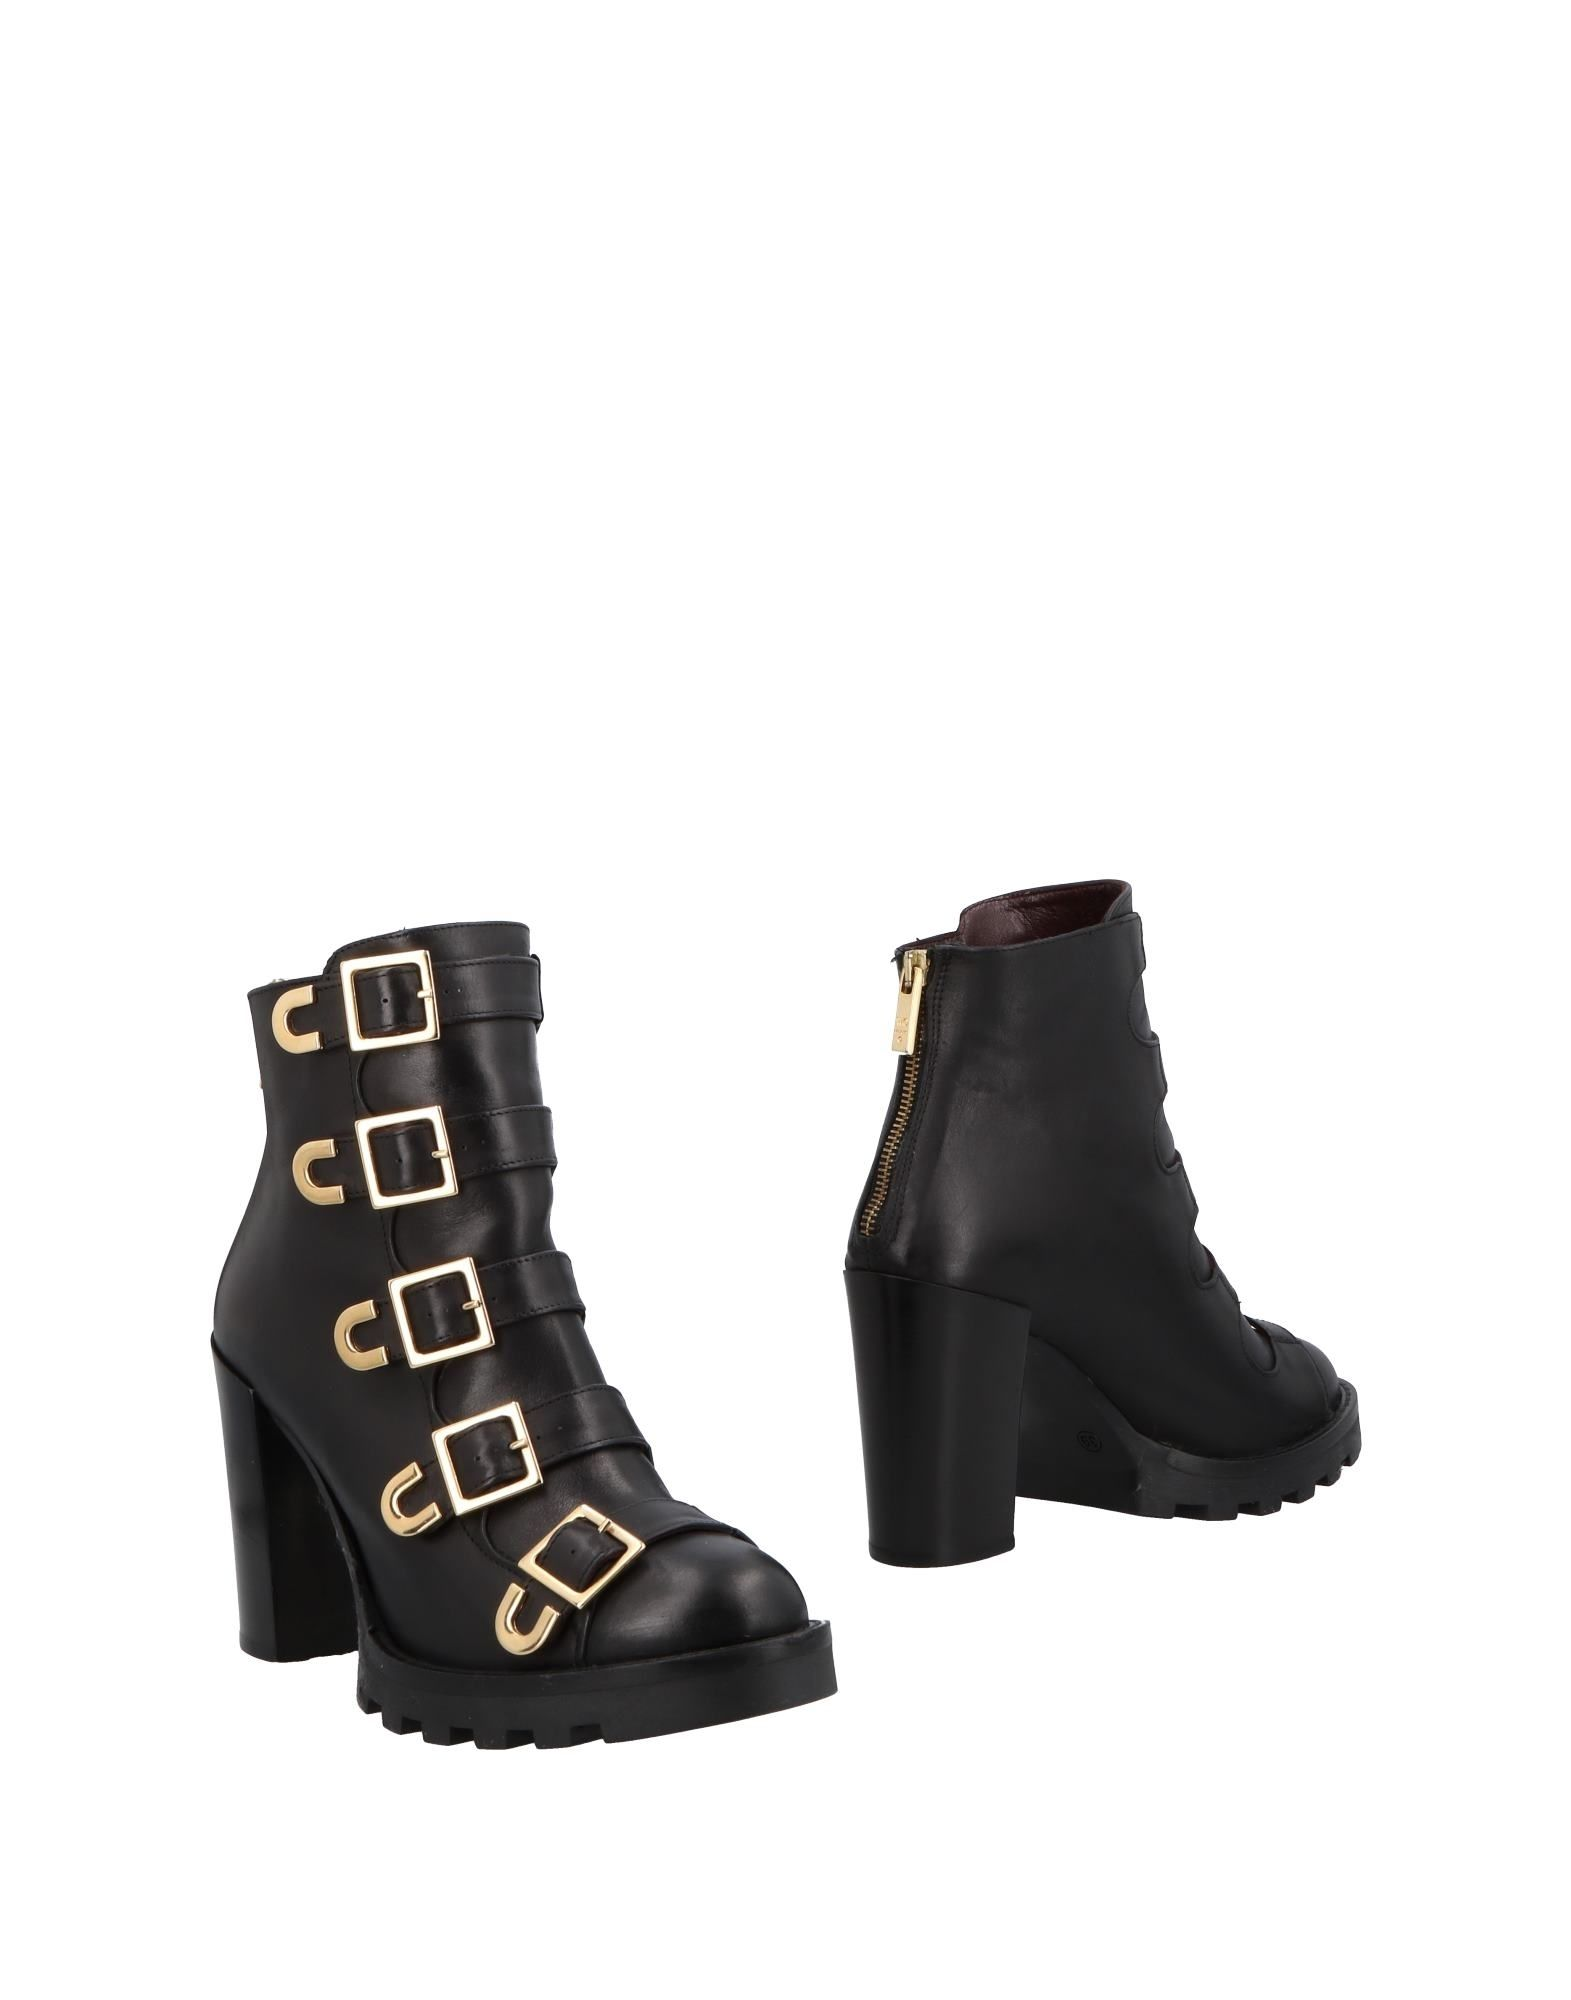 Wo Milano Ankle Milano Boot - Women Wo Milano Ankle Ankle Boots online on  Australia - 11498372HV 7dcab1